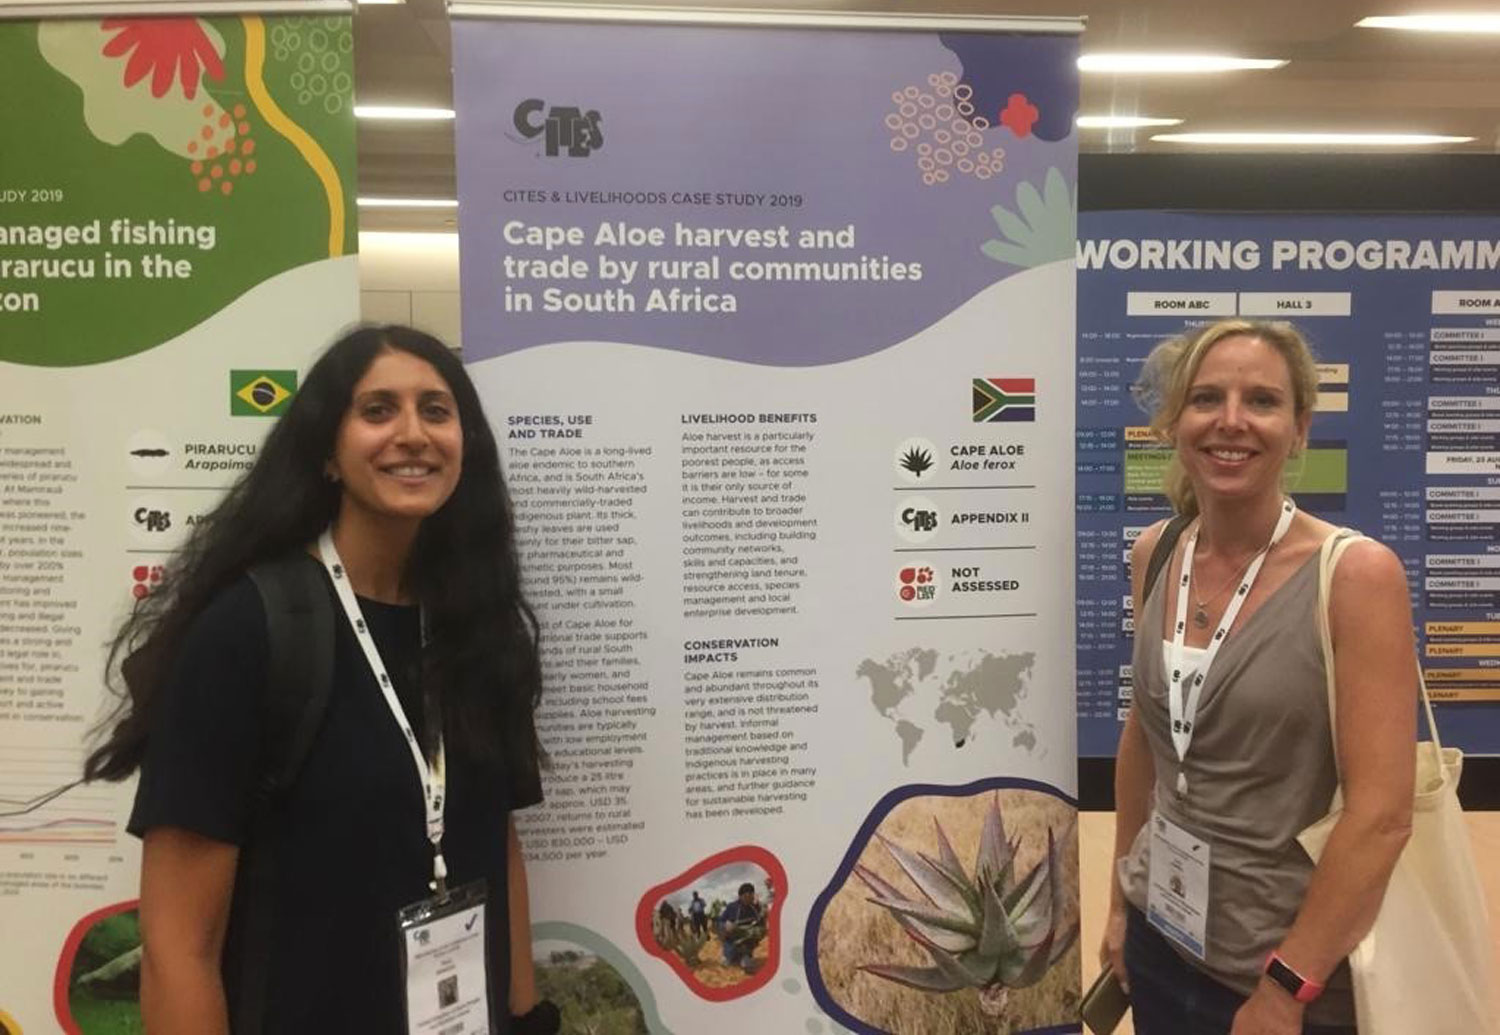 Sonia and Carly stood in front of poster at the conference